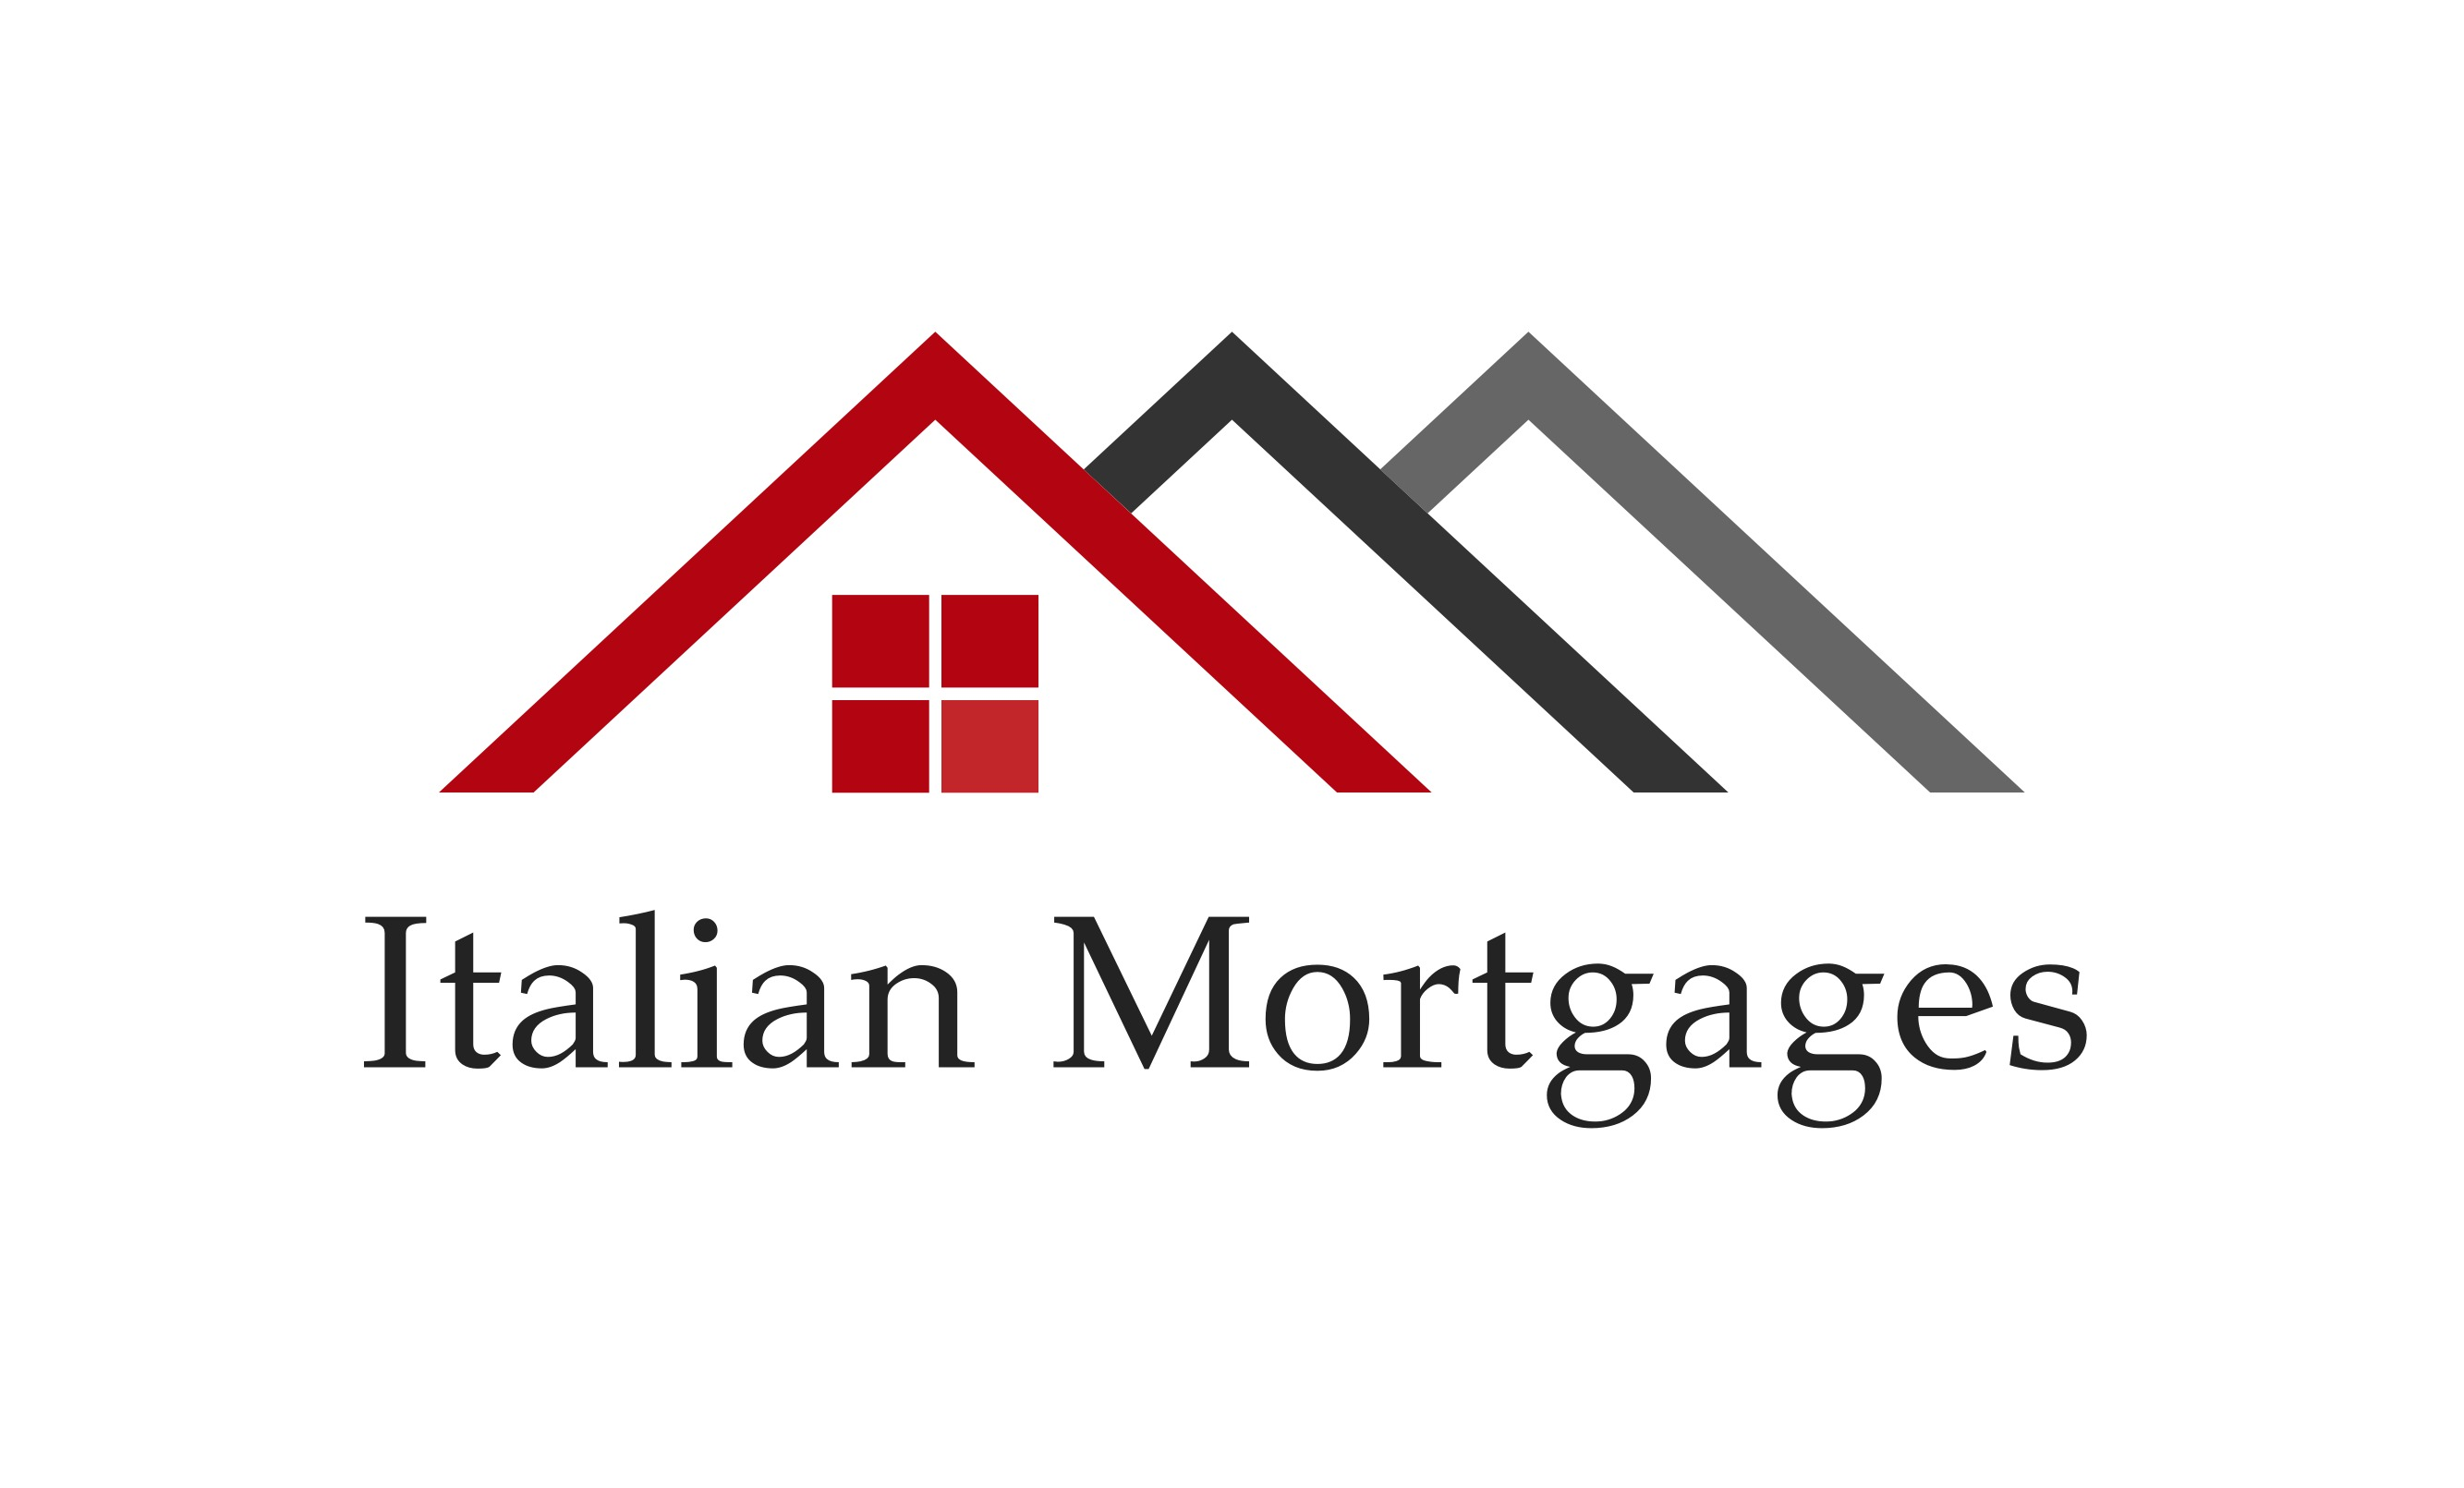 Italian Mortgages